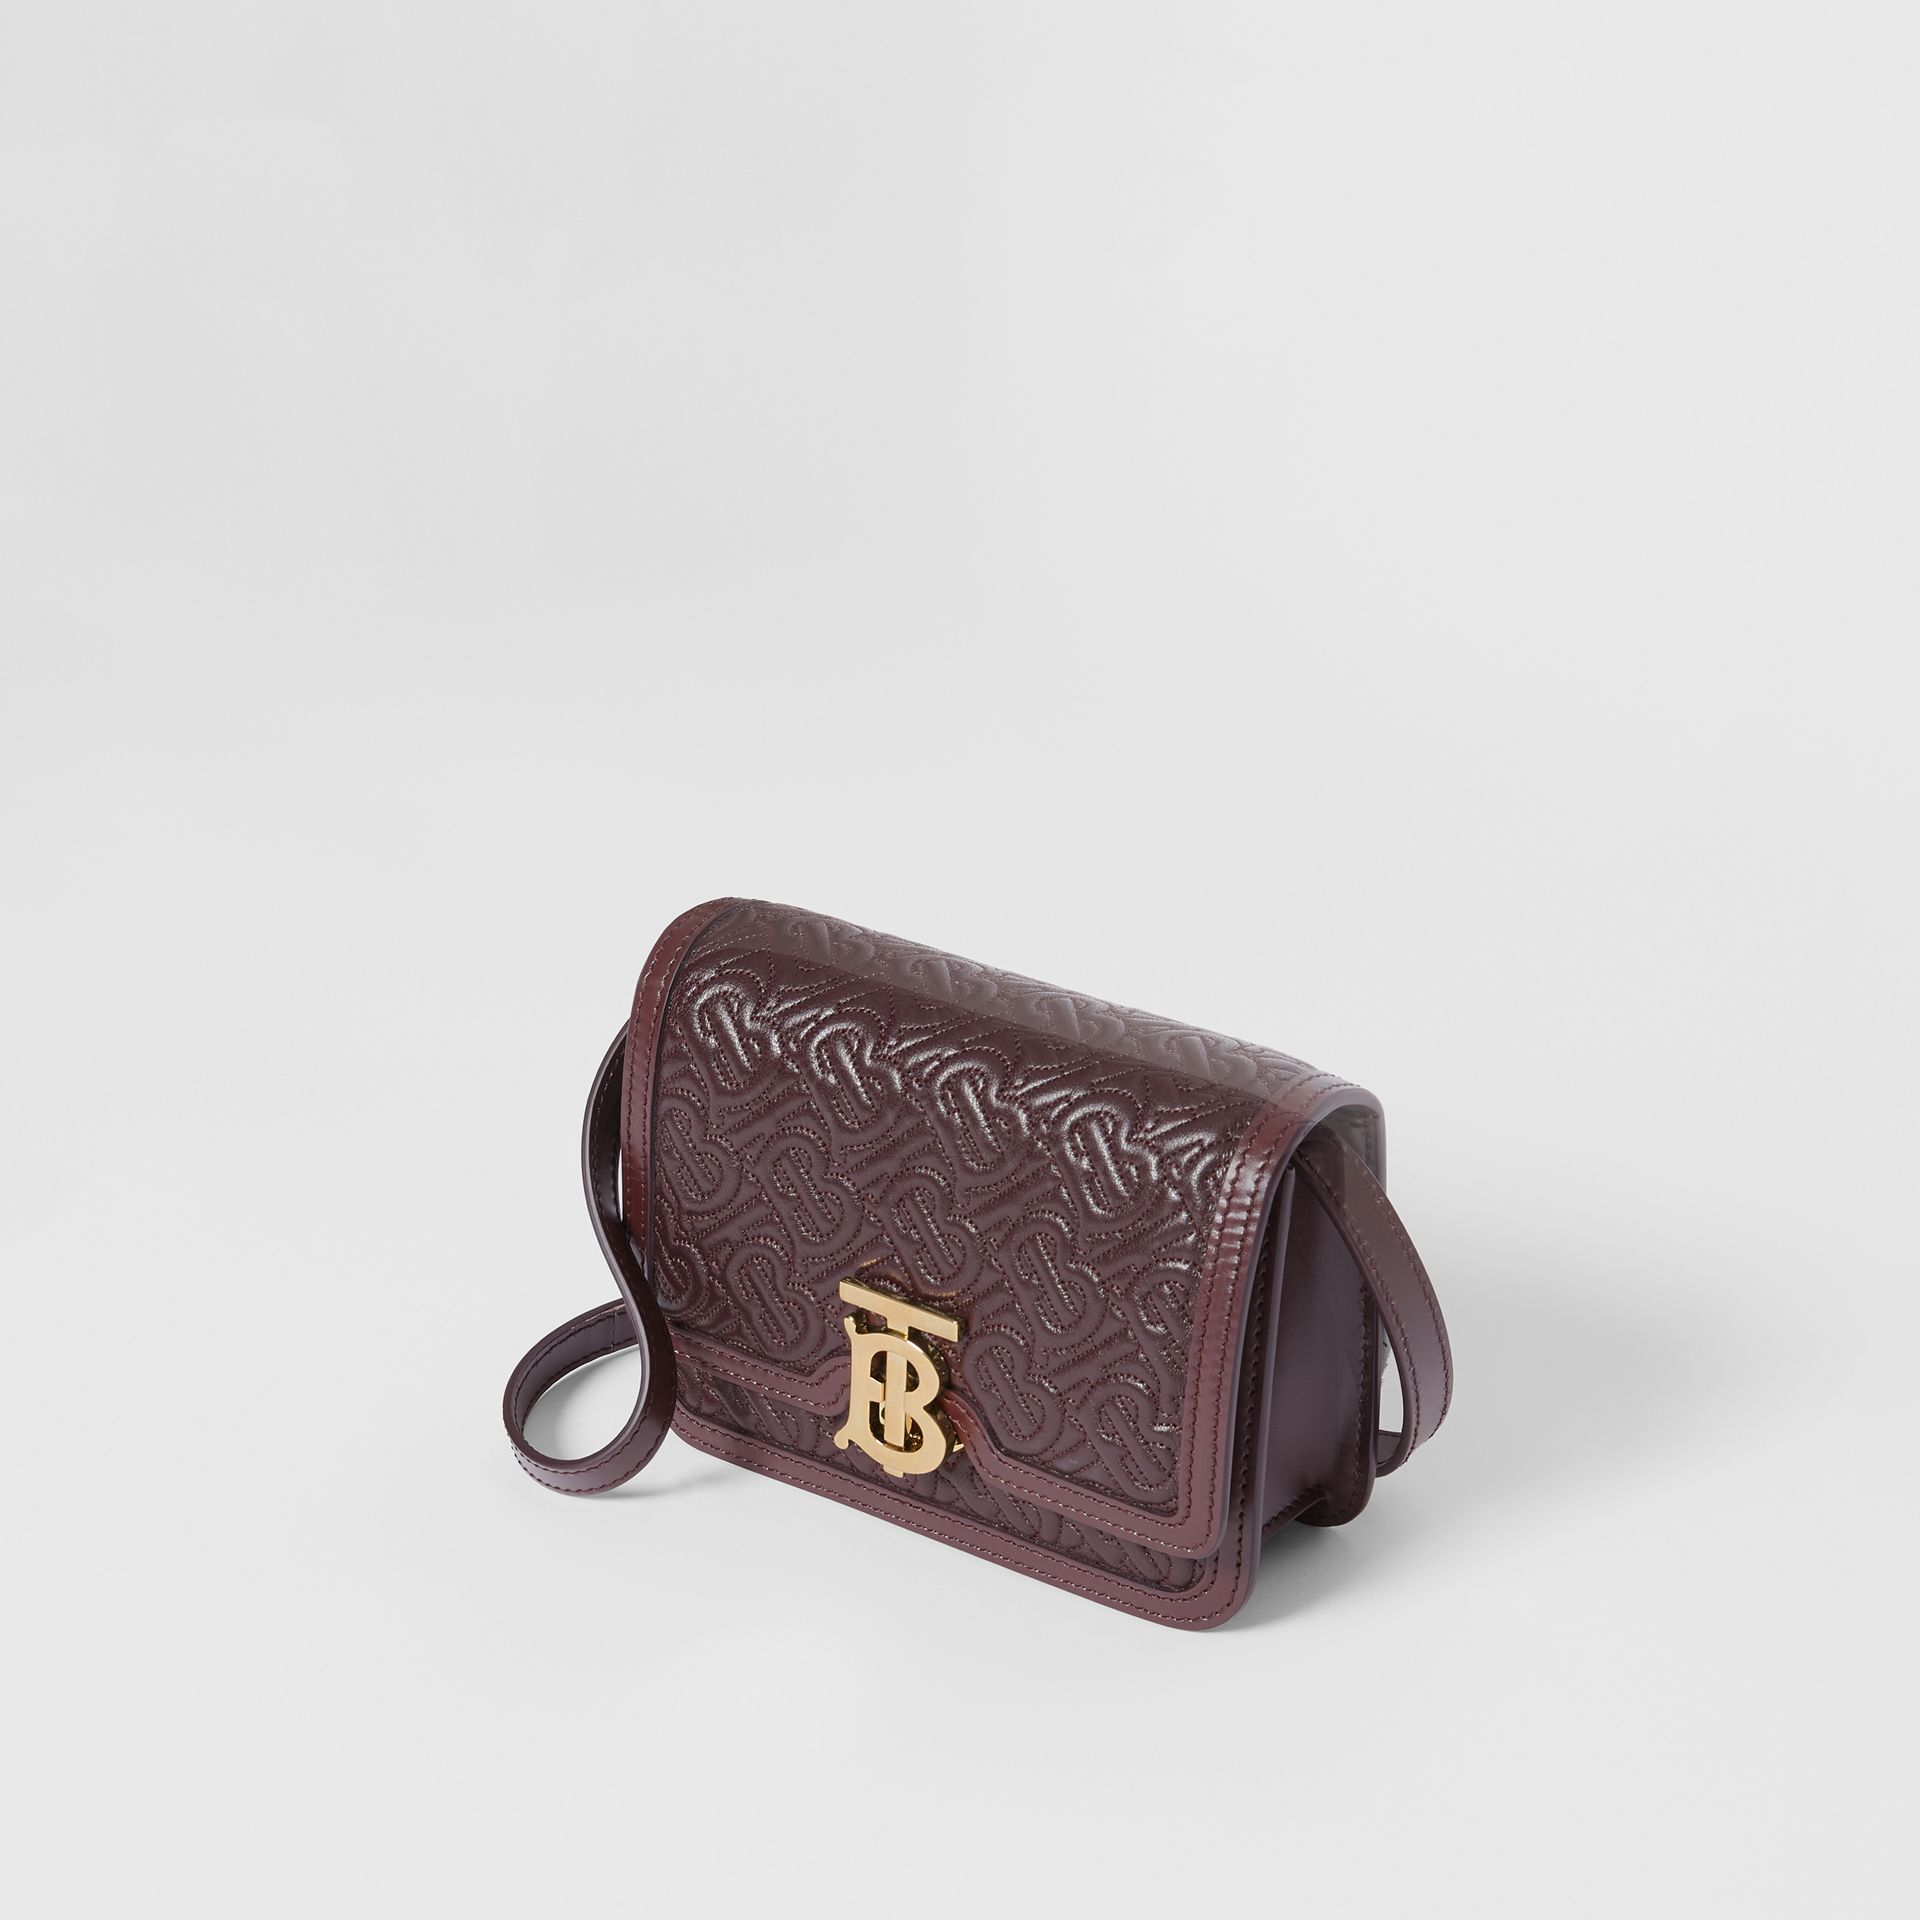 Mini Quilted Monogram Lambskin TB Bag in Dark Burgundy - Women | Burberry - gallery image 3